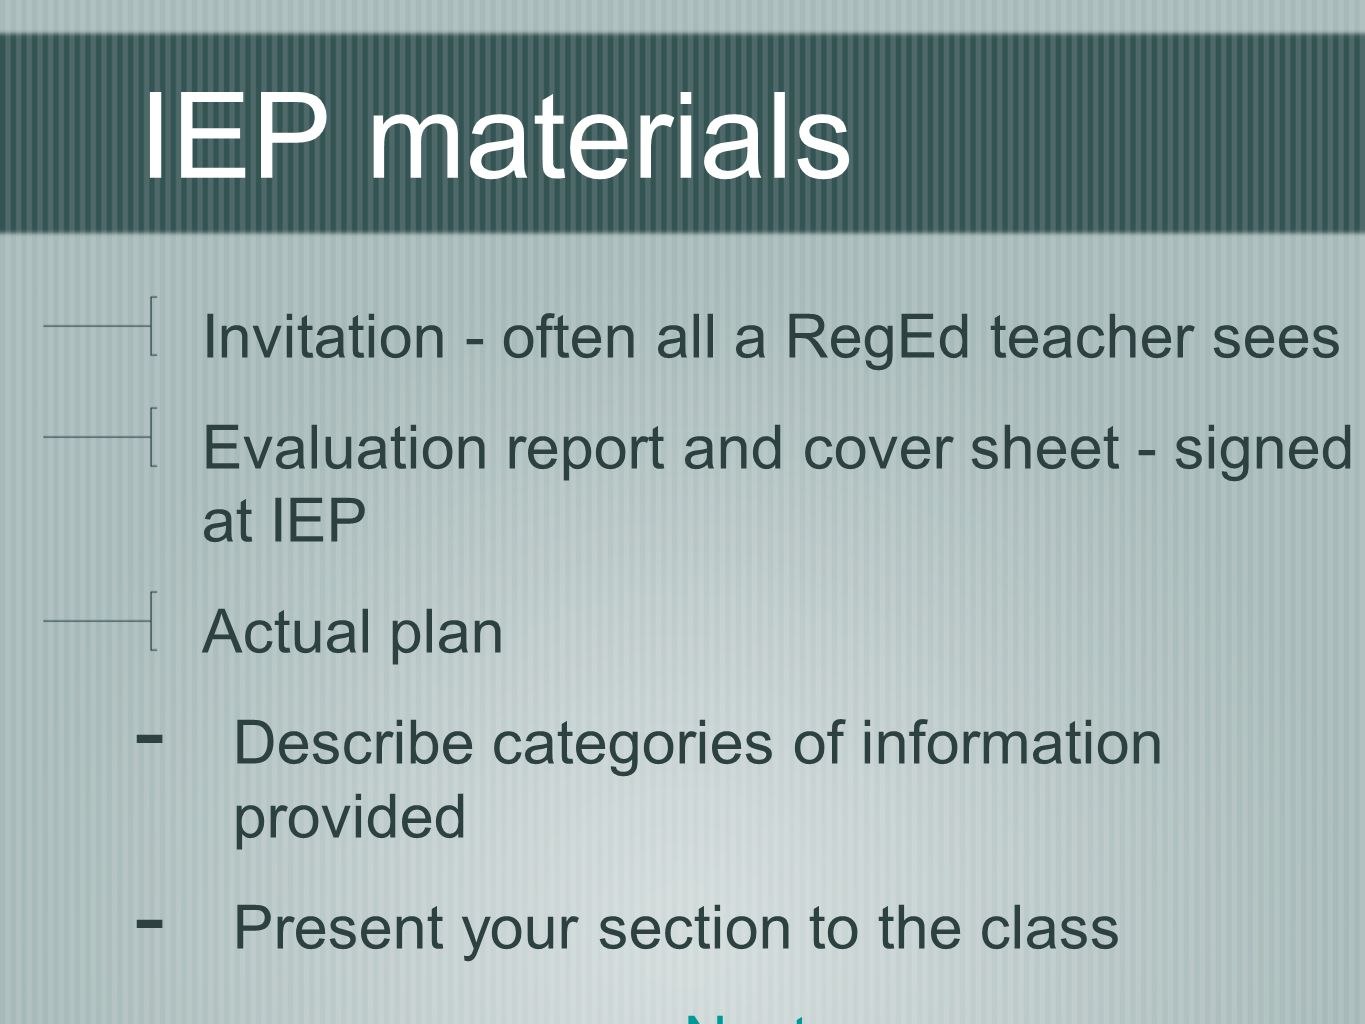 IEP materials Invitation - often all a RegEd teacher sees Evaluation report and cover sheet - signed at IEP Actual plan - Describe categories of information provided - Present your section to the class Next